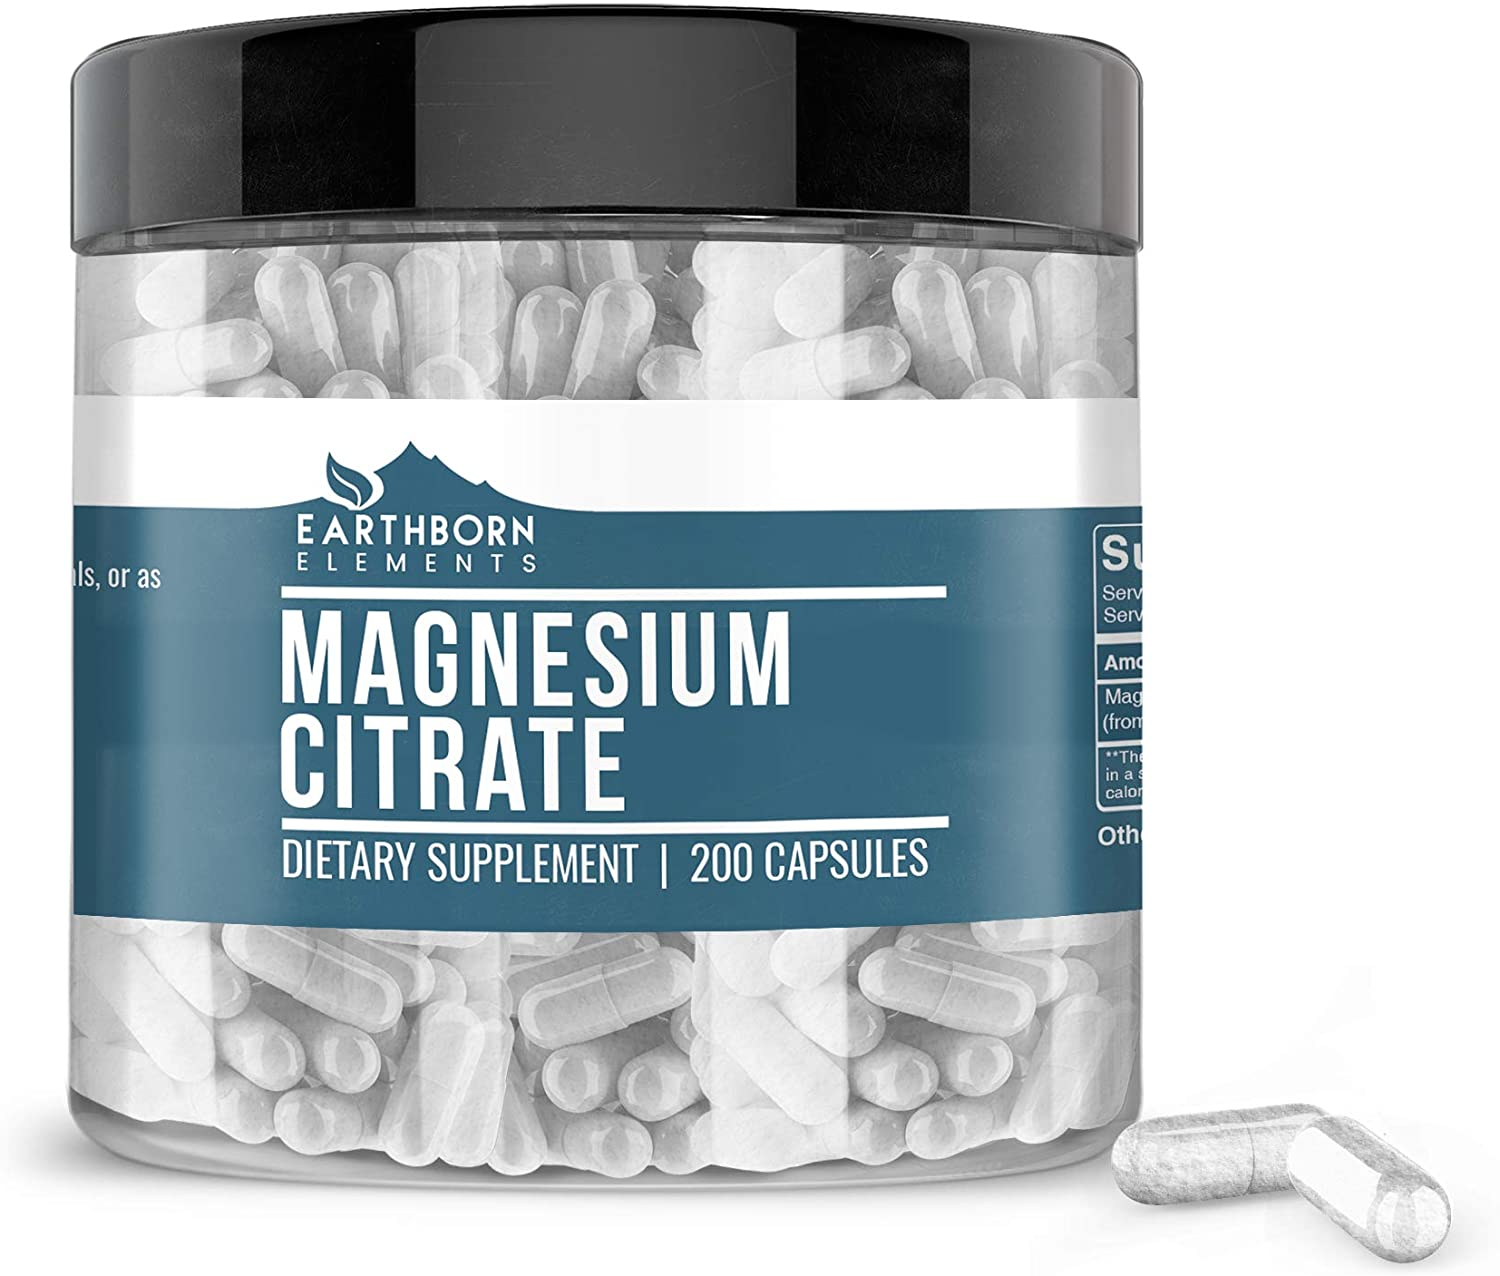 Magnesium Citrate, 200 Capsules, 1,060mg Magnesium/Serving, Non-GMO, Gluten-Free, No Additives or Fillers, Pharmaceutical Grade, Lab-Tested, Made in The USA, Satisfaction Guaranteed